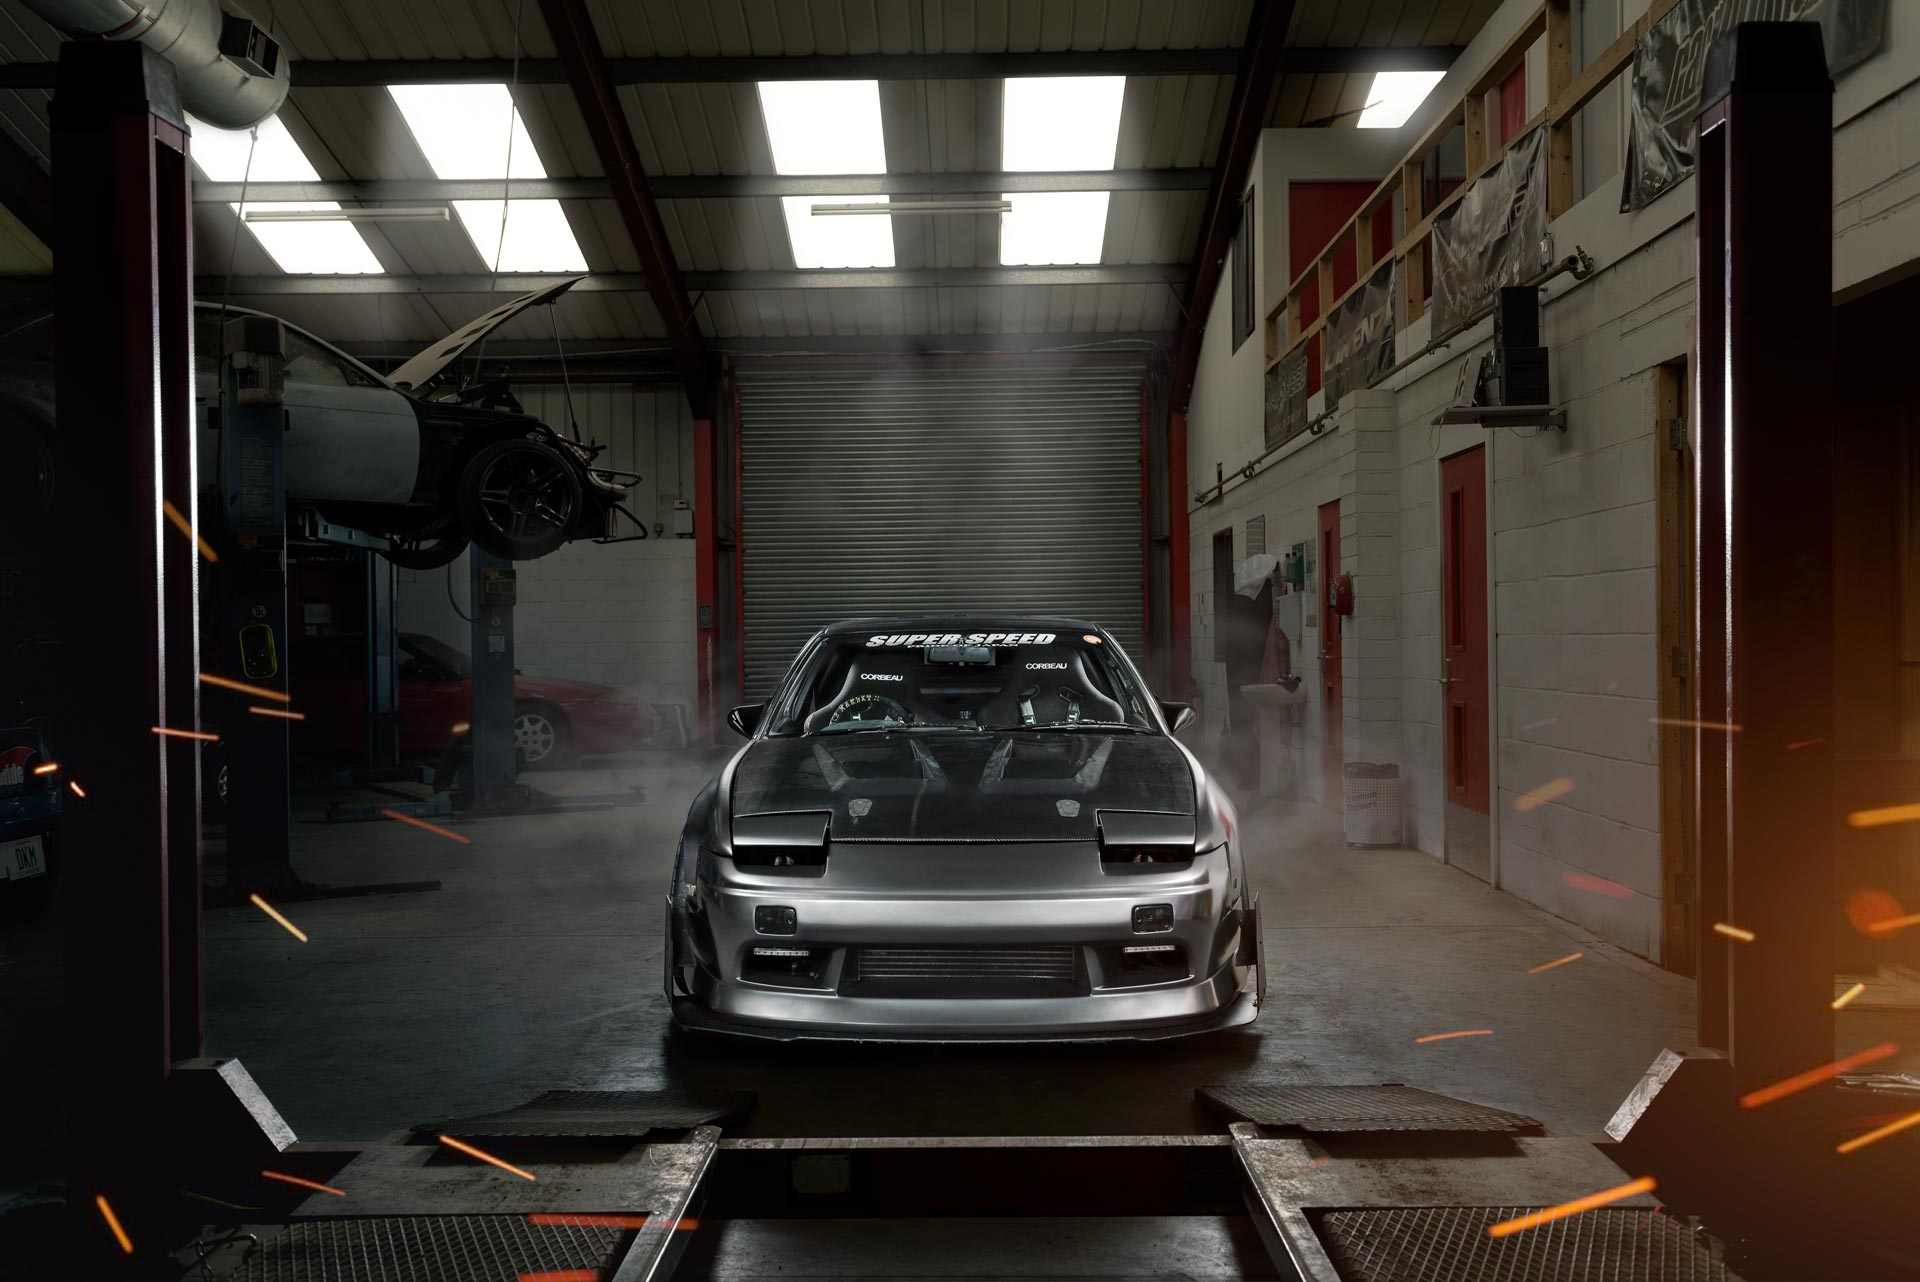 Nissan Silvia S13 After